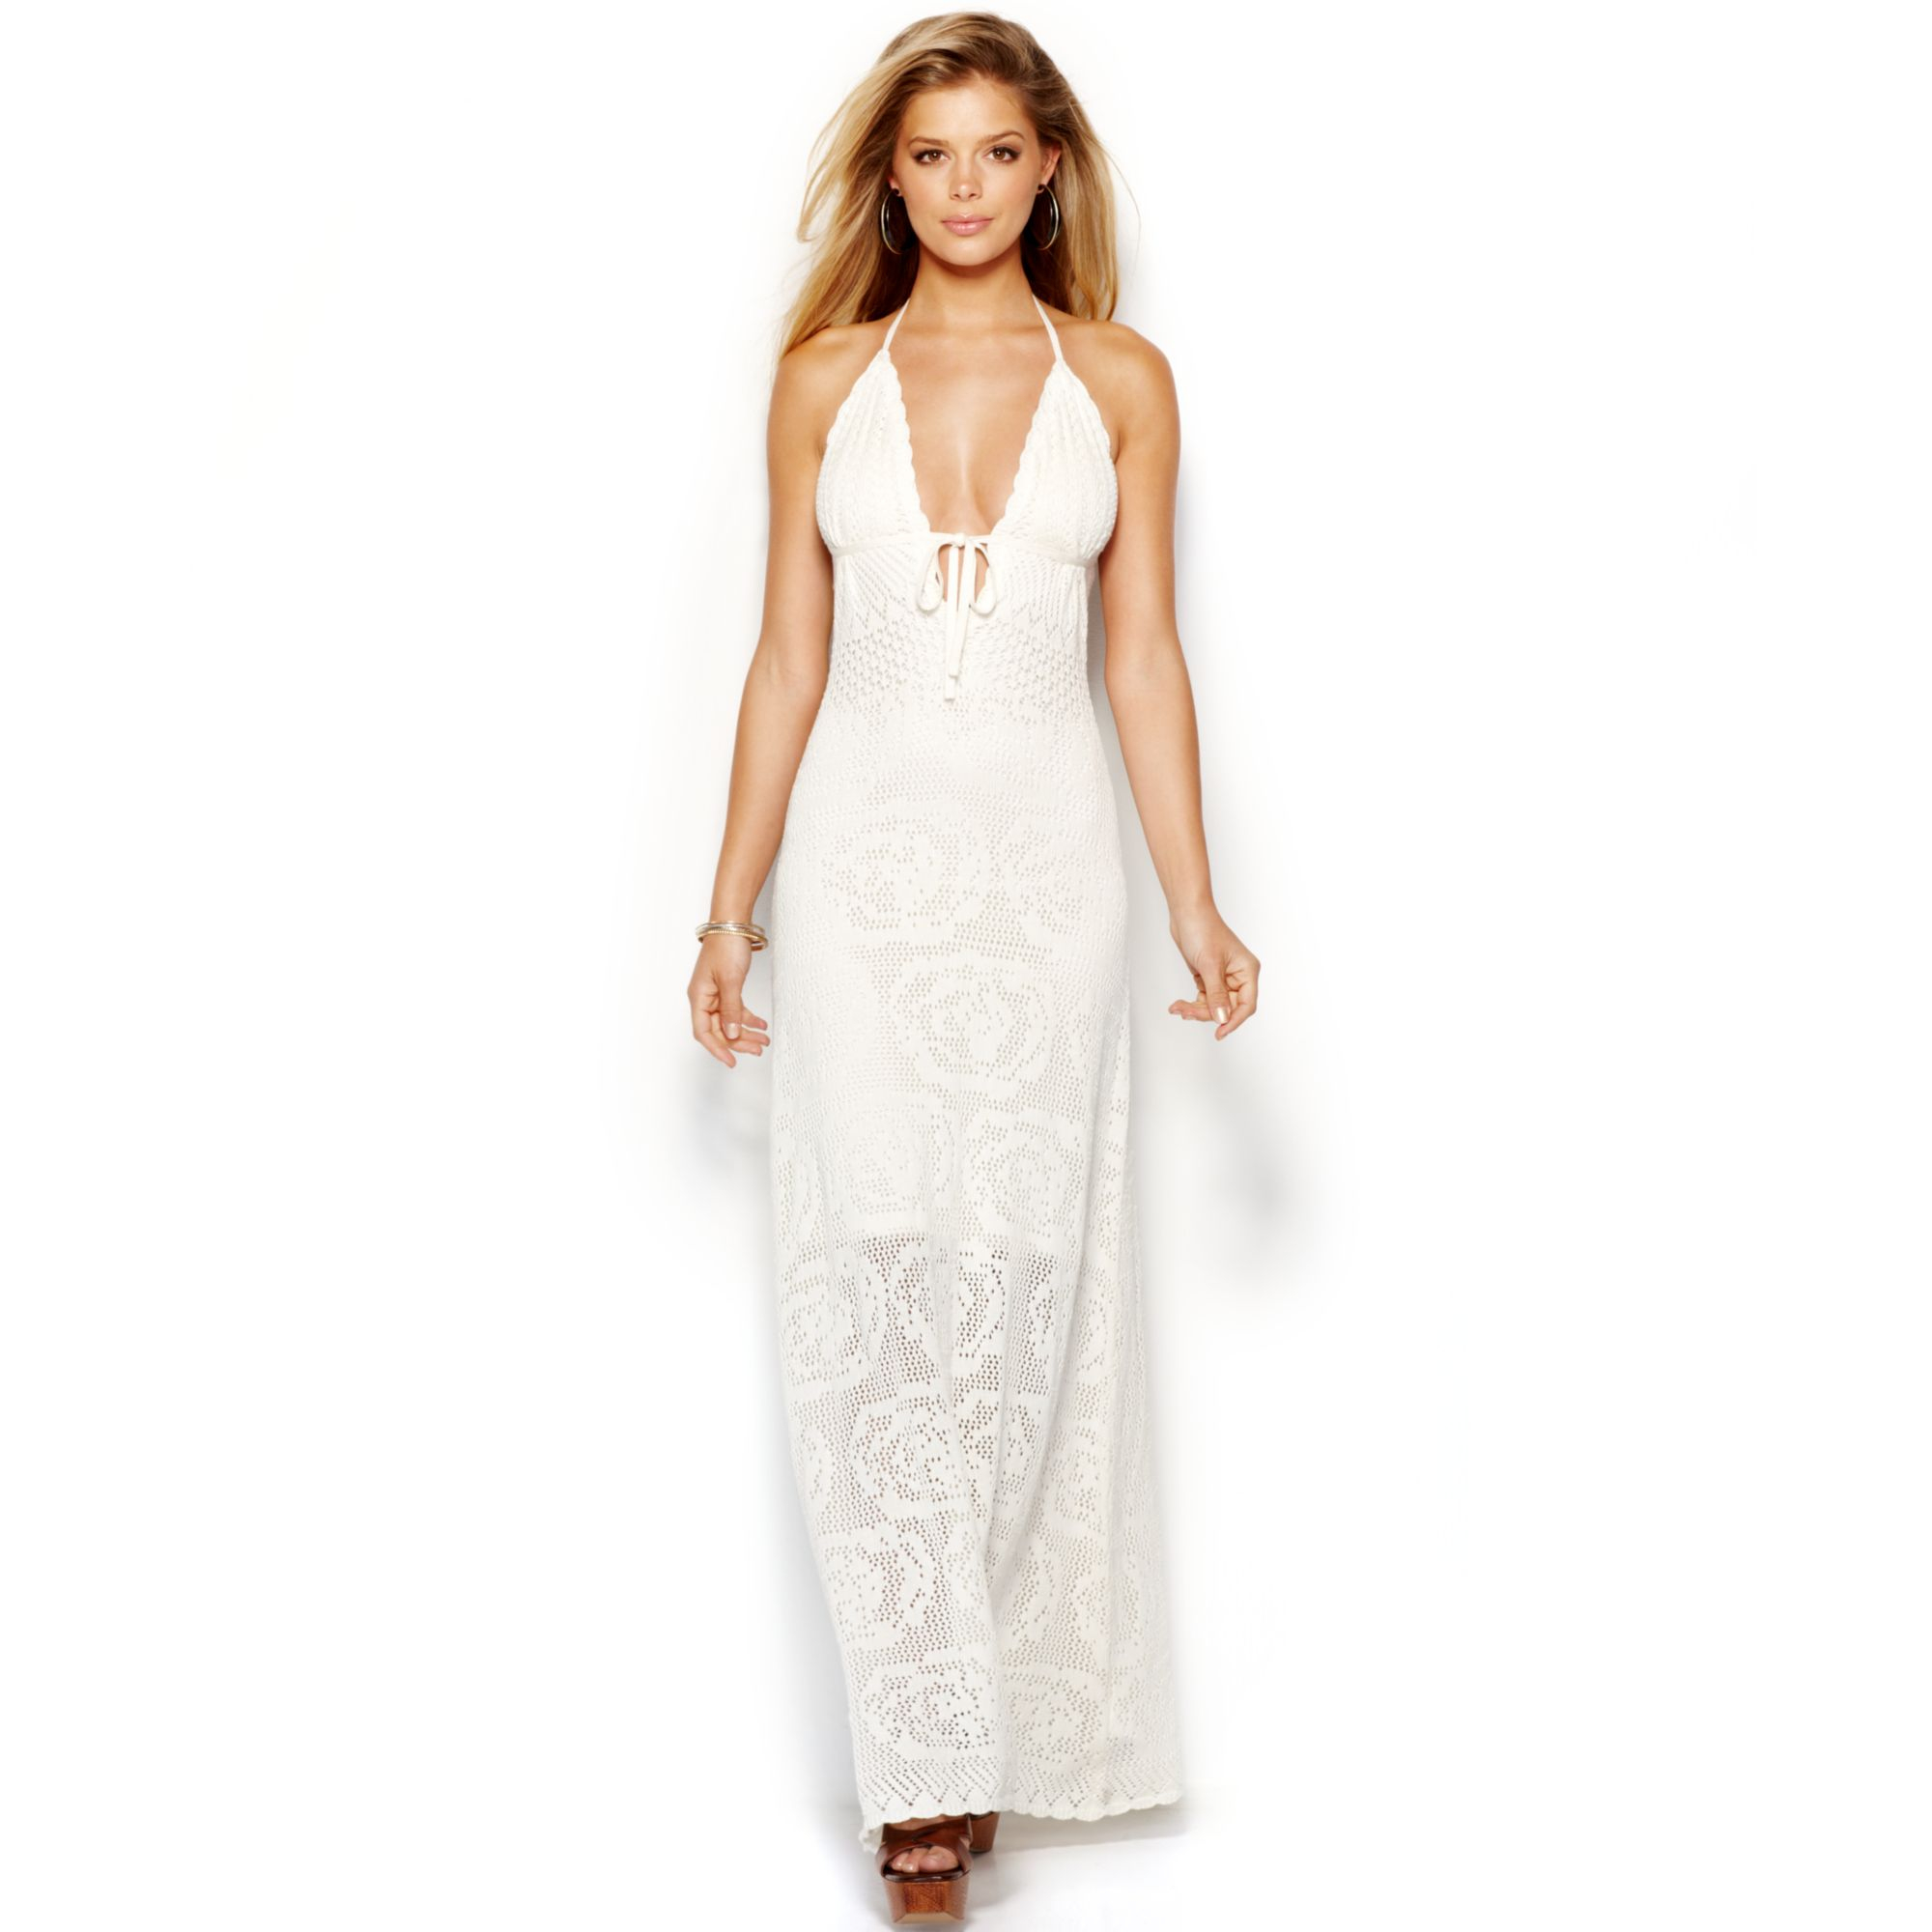 Guess crochet halter maxi dress in white lyst for Guess dresses for wedding